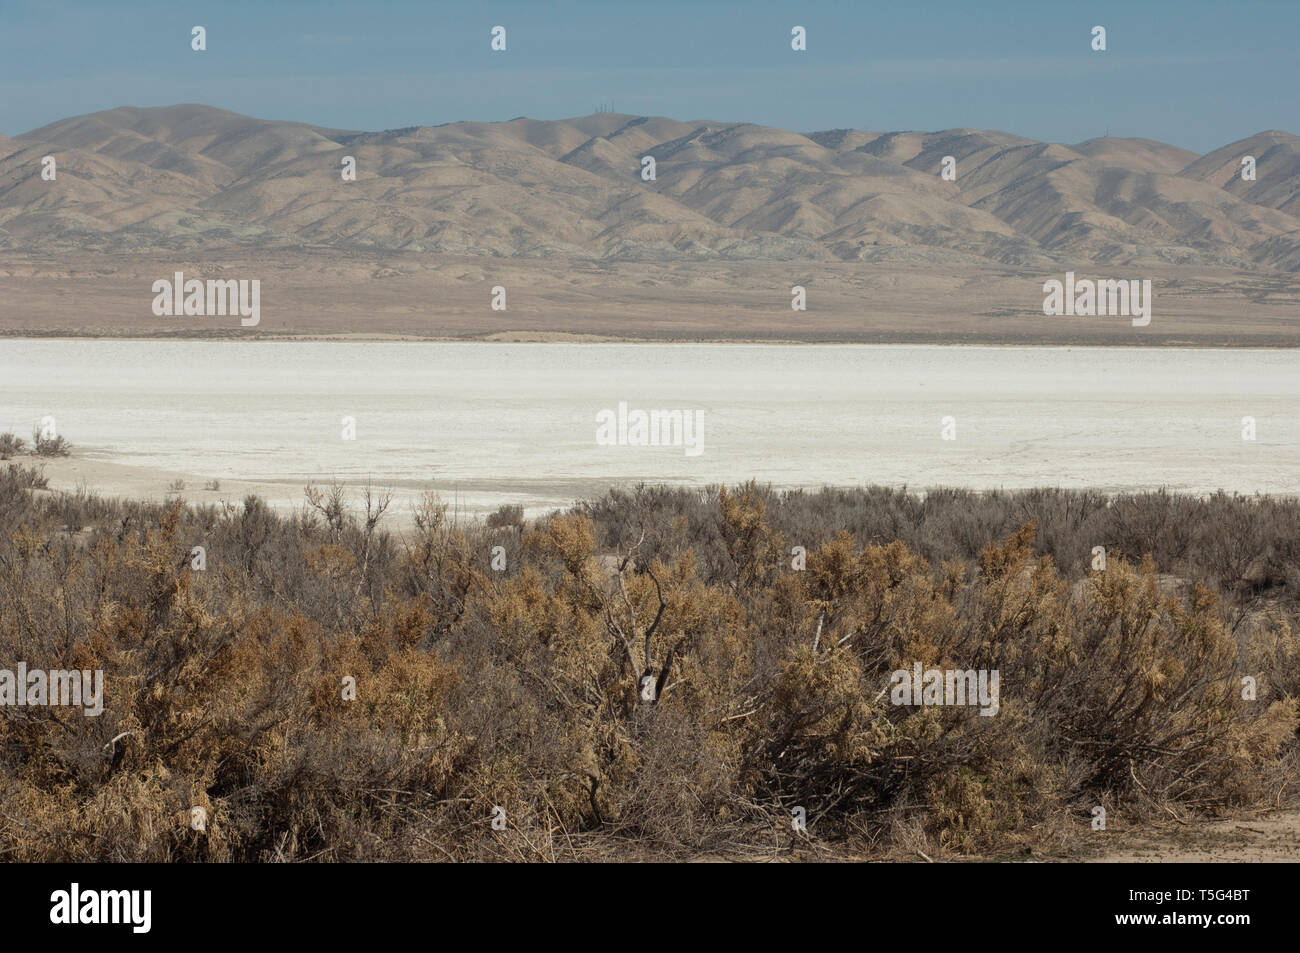 Soda Lake sur la faille de San Andreas, Carrizo Plain National Monument (Californie). Photographie numérique Photo Stock